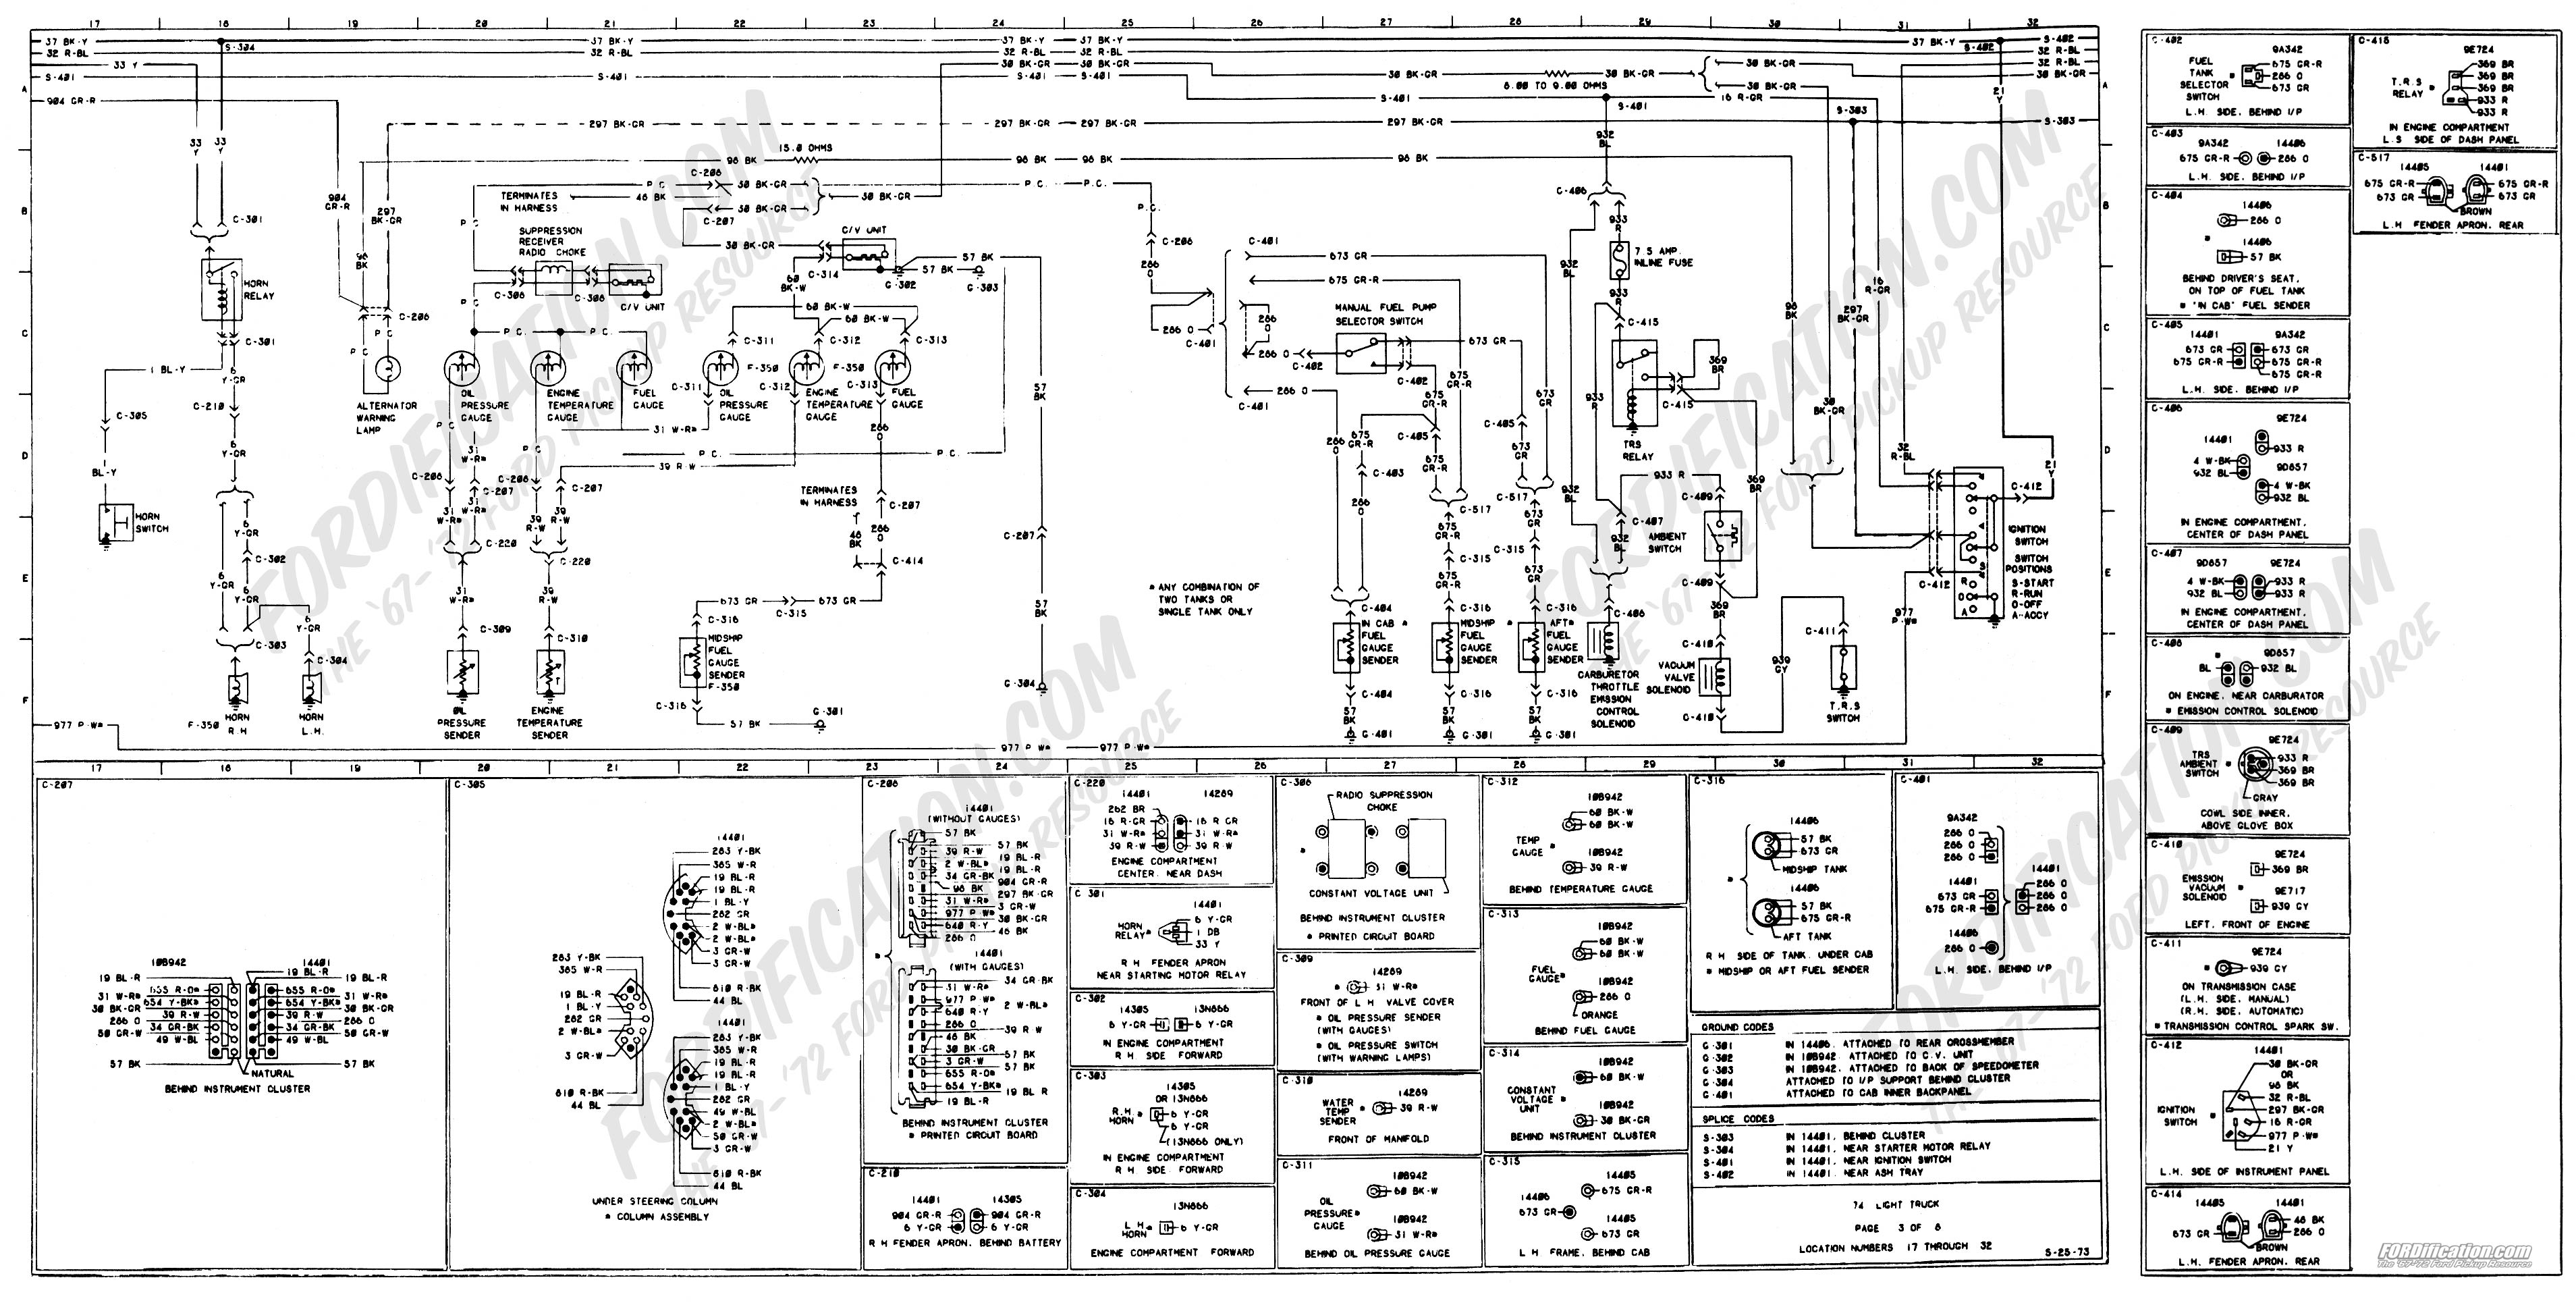 74 ford f700 wiring diagram wiring data \u2022  1973 1979 ford truck wiring diagrams schematics fordification net rh fordification net 1988 ford f700 fuel